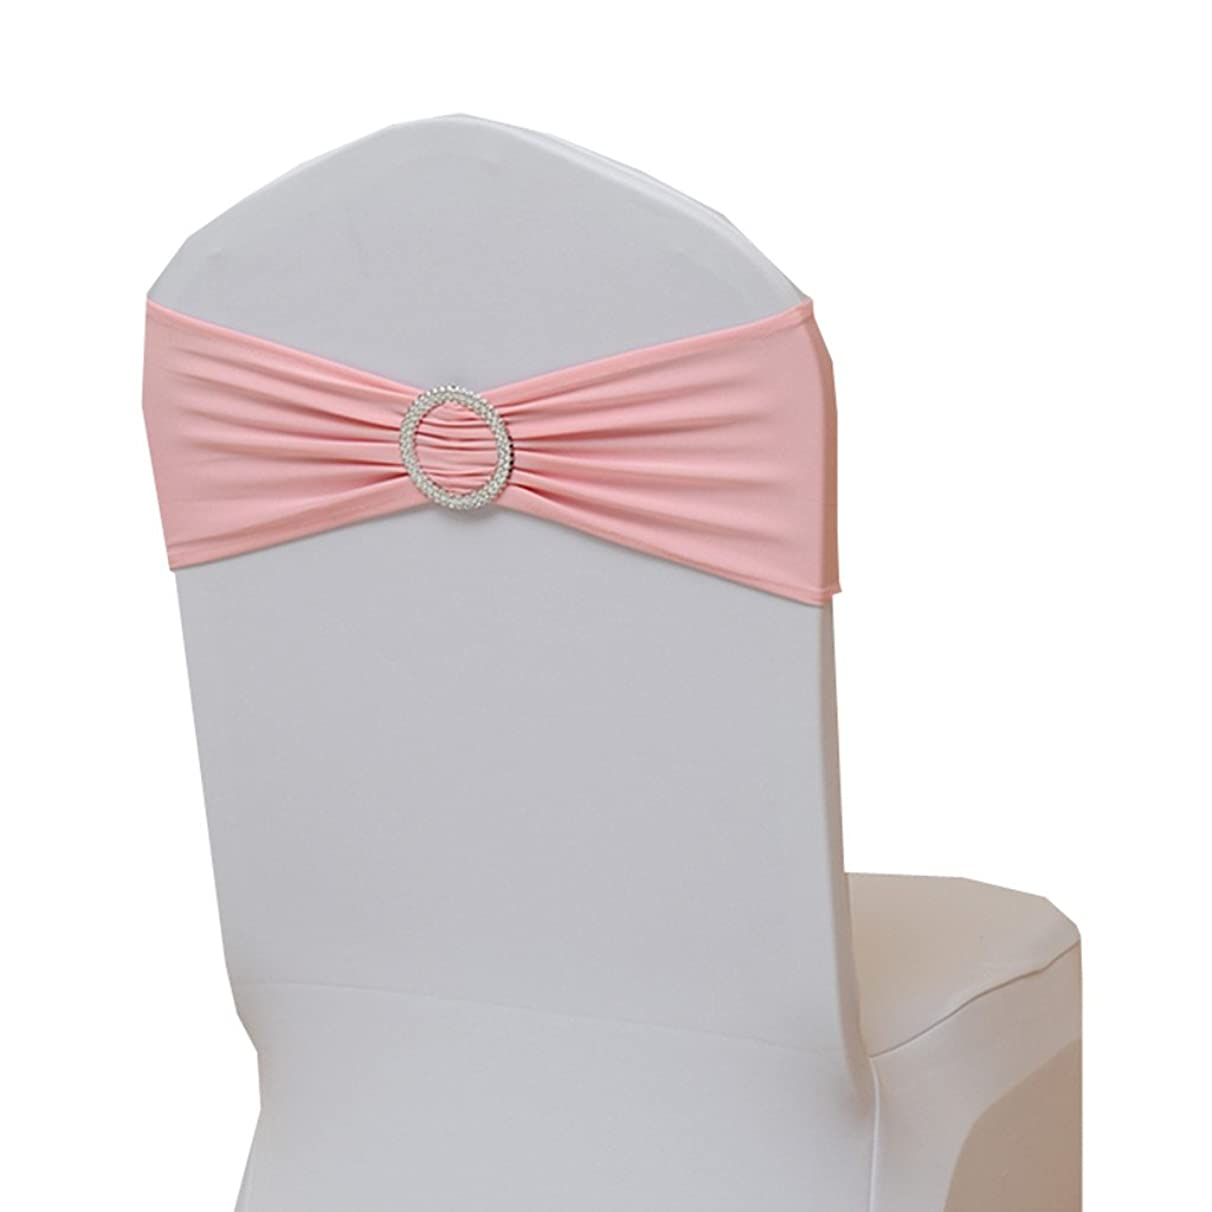 Fvstar 10pcs Pink Wedding Chair Sashes Party Chair Tie Ribbons Spandex Chair Bows for Baby Shower Valentines New Year Event Decorations Without White Covers